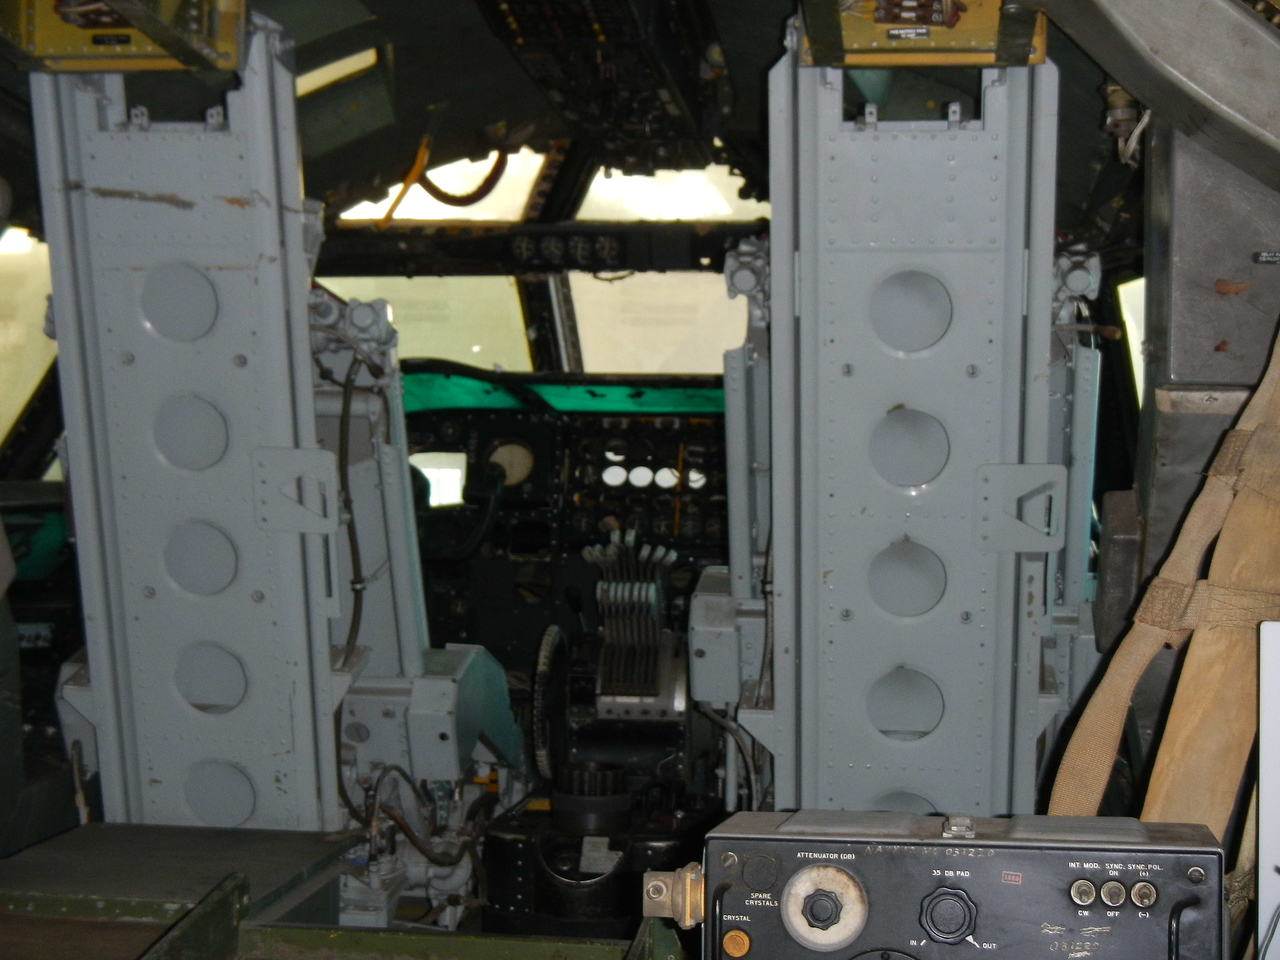 The cockpit of a B-52. You may be able to see the 8 throttles for the engines. When the B-52 came into production, it was actually faster than Soviet interceptors. They had one chance to be vectored in; if they missed it, they'd never catch up. We had a wing of B-52s at Minot AFB, in addition to the Missile Wing where I was a combat crewmember.